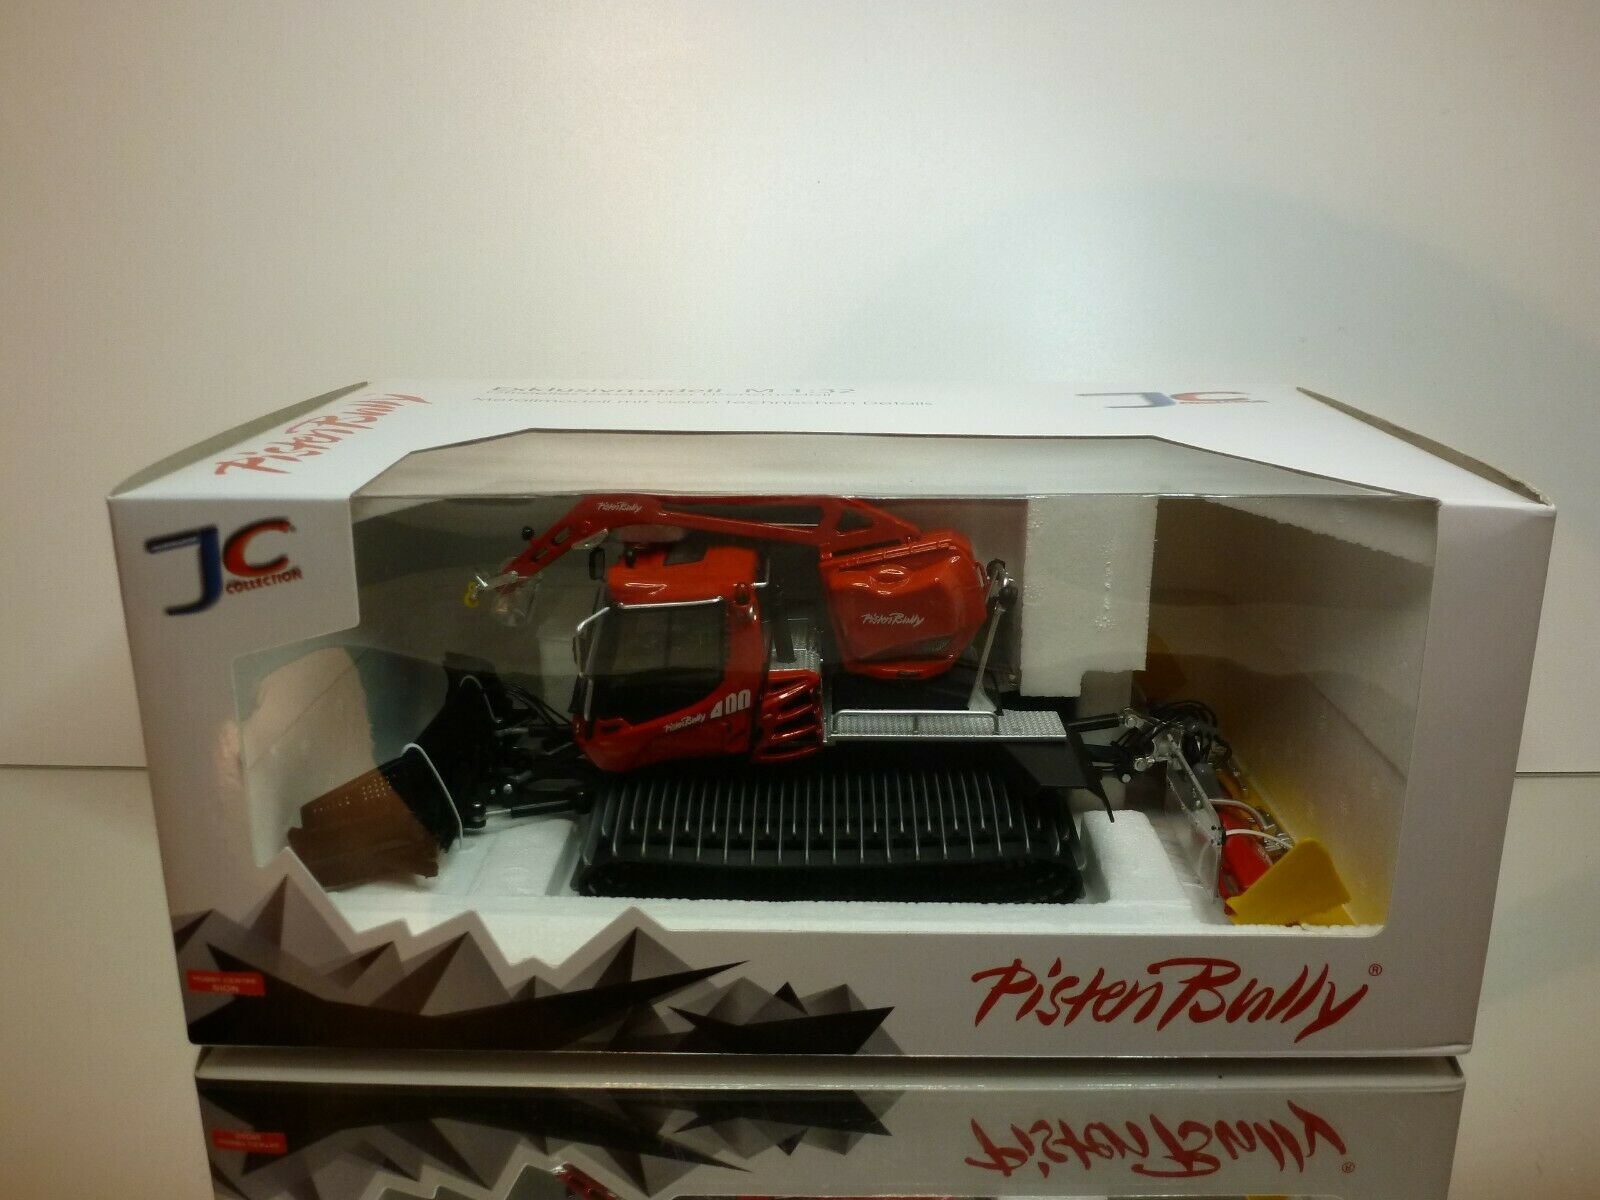 JC COLLECTION PISTENBULLY PISTEN BULLY PB400 - rouge 1 32 - UNUSED IN UNOPENED BOX